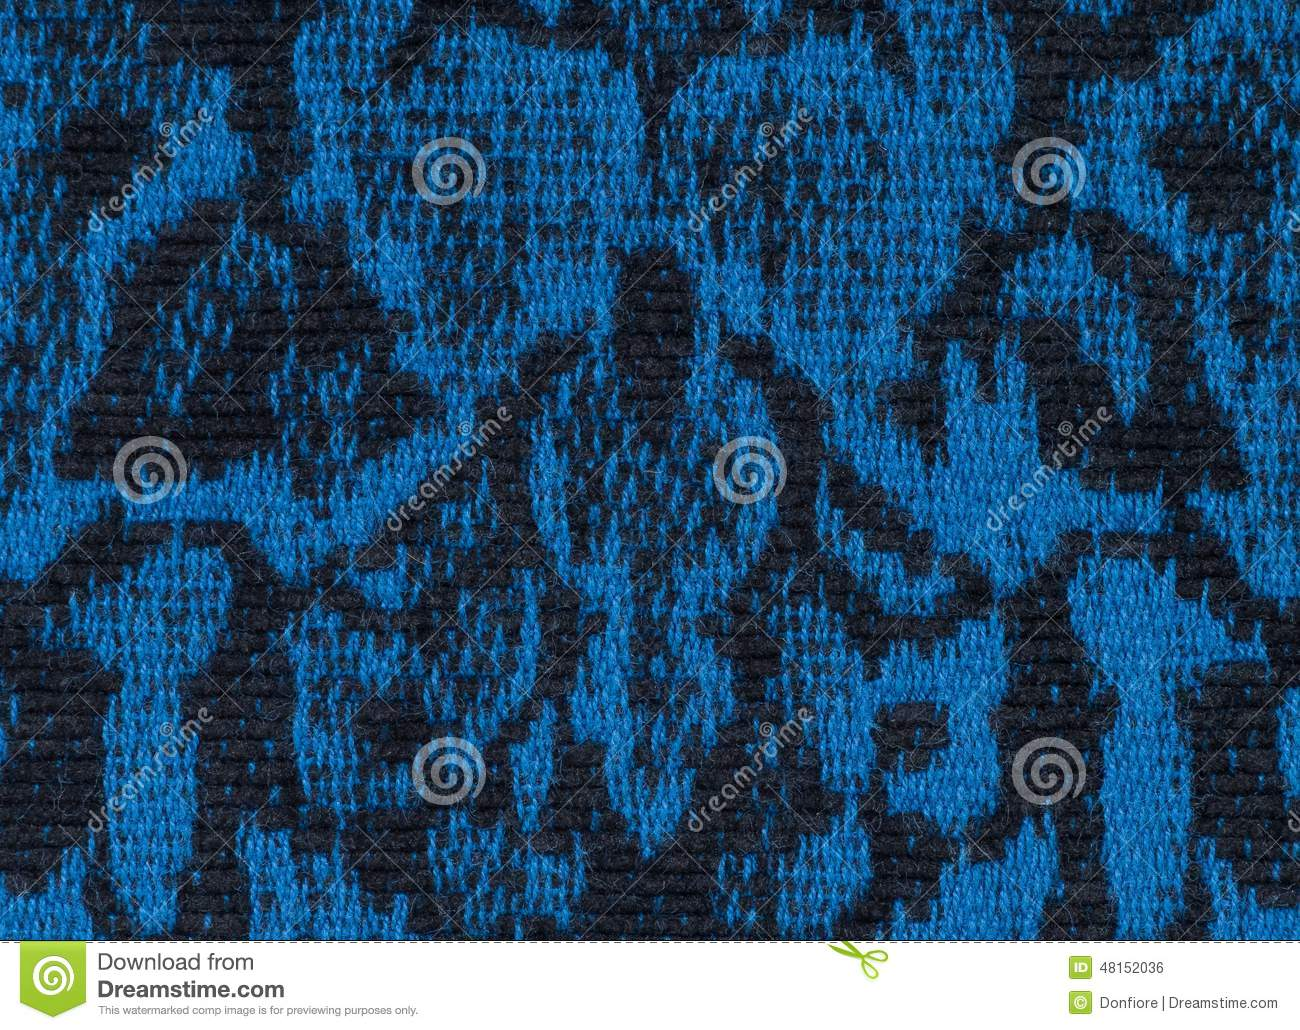 Fabric Texture Endless Pattern, Black And Blue Stock Photo - Image ... for Fabric Texture Design Blue  174mzq